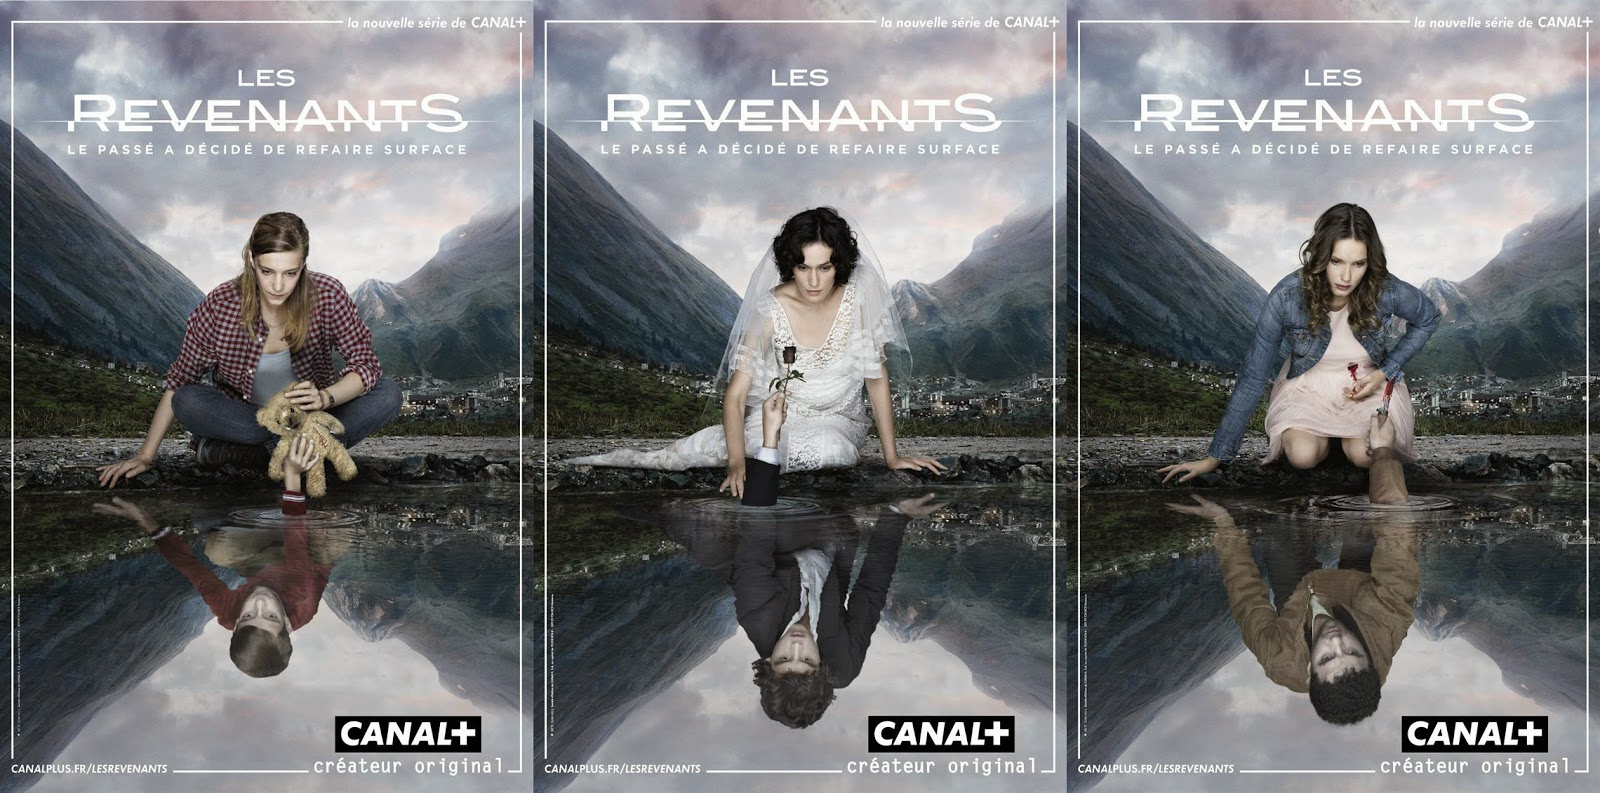 les revenants serie francesa de zombies